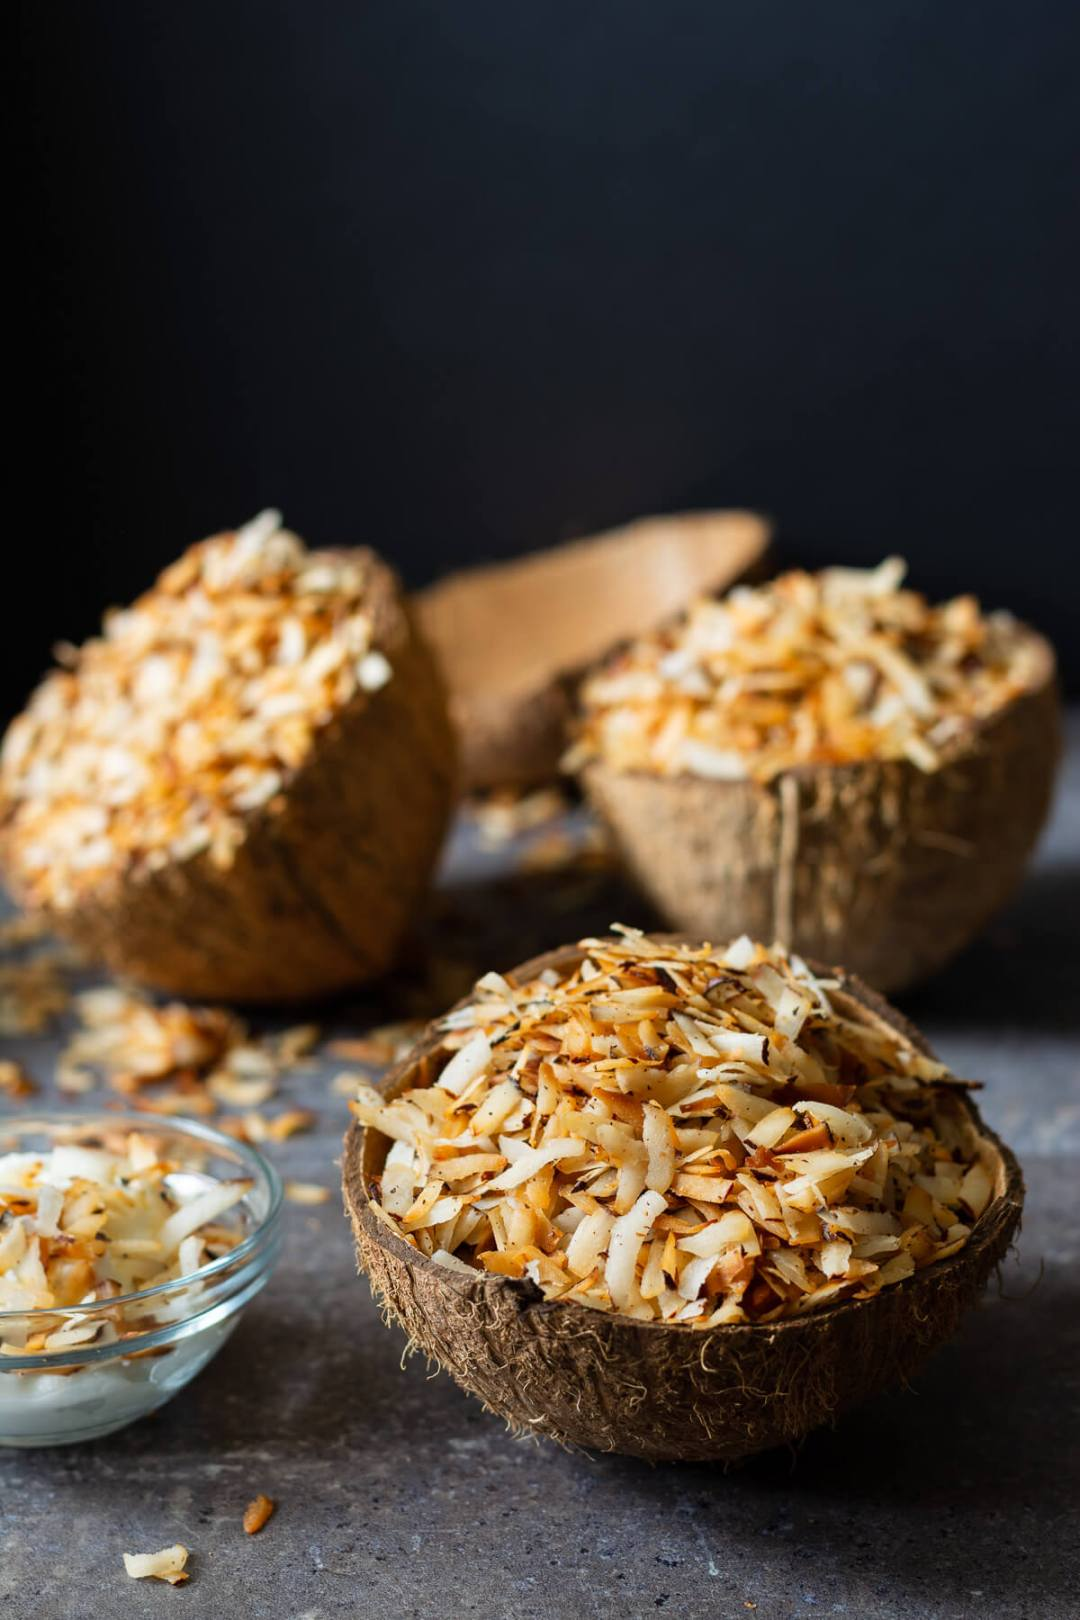 toasted coconut candy served in empty coconut shells